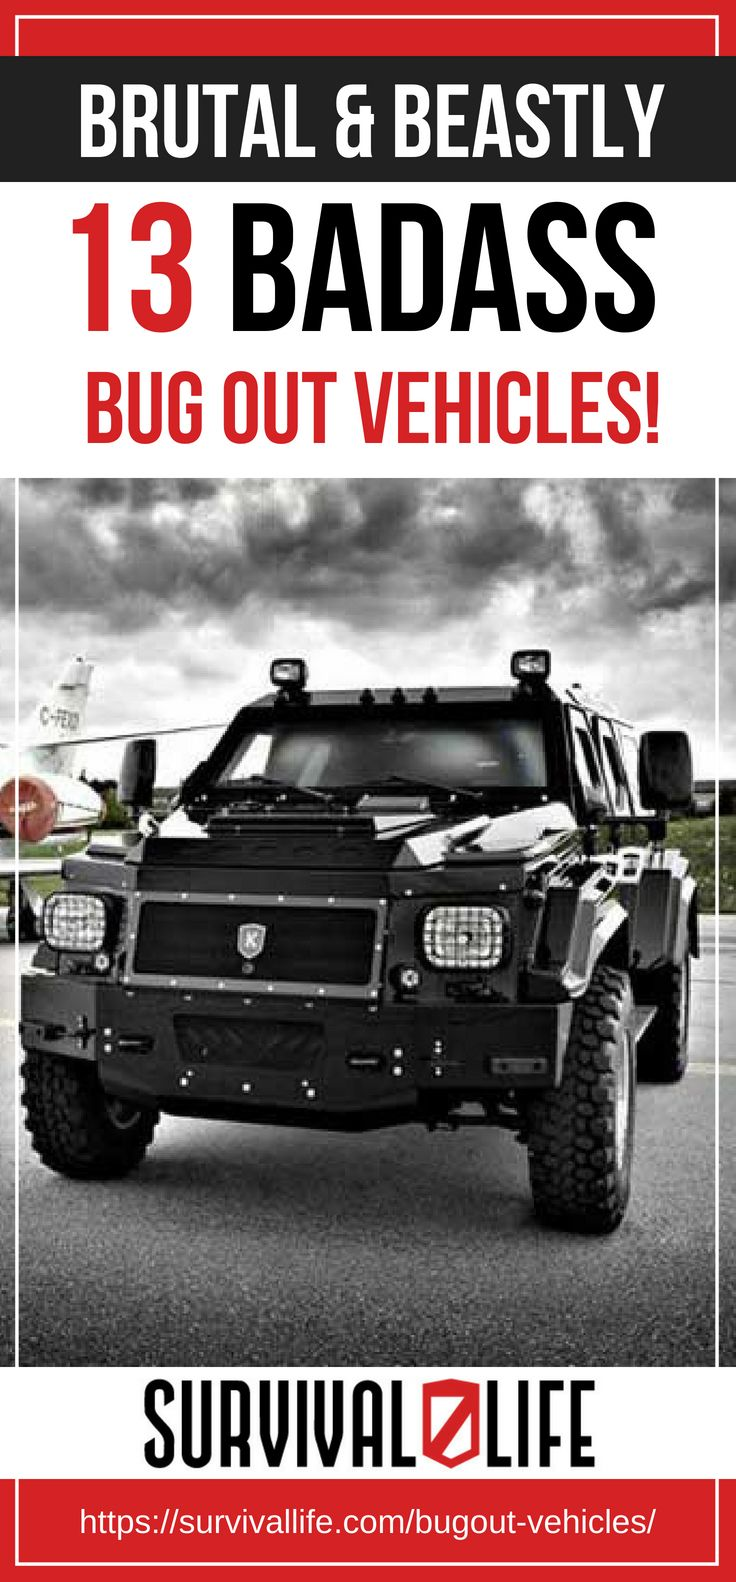 Placard   Brutal and Beastly: 13 BADASS Bug Out Vehicles!